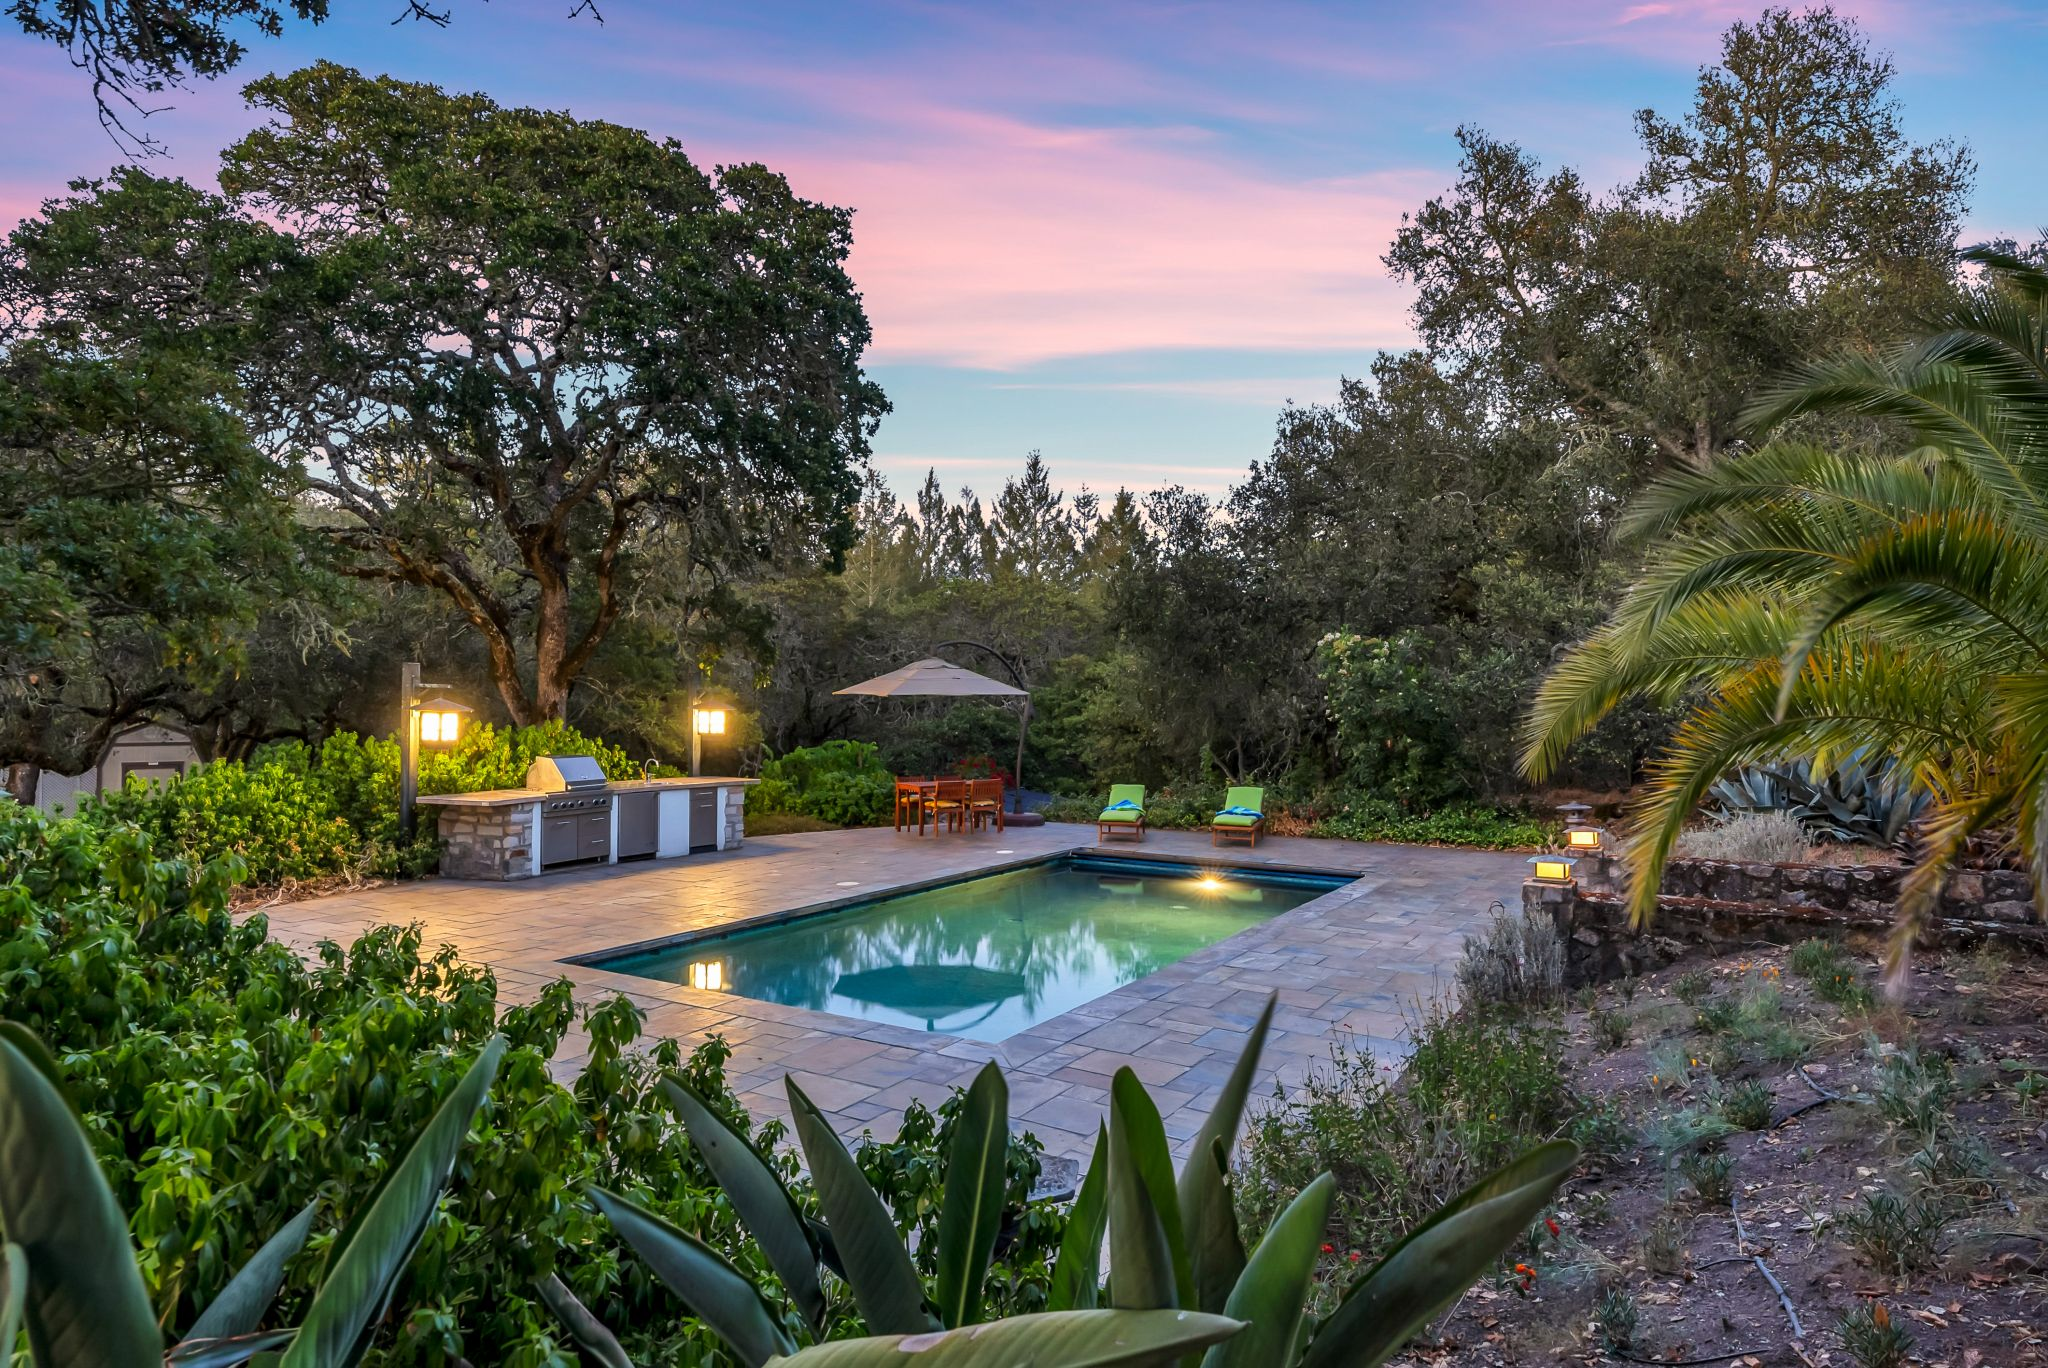 The pool, surrounded by palms, is a private oasis. An outdoor kitchen and patio complete the serene setting. Anna Marie Erwert writes from both the renter and new buyer perspective, having (finally) achieved both statuses. She focuses on national real estate trends, specializing in the San Francisco Bay Area and Pacific Northwest. Follow Anna on Twitter: @AnnaMarieErwert.